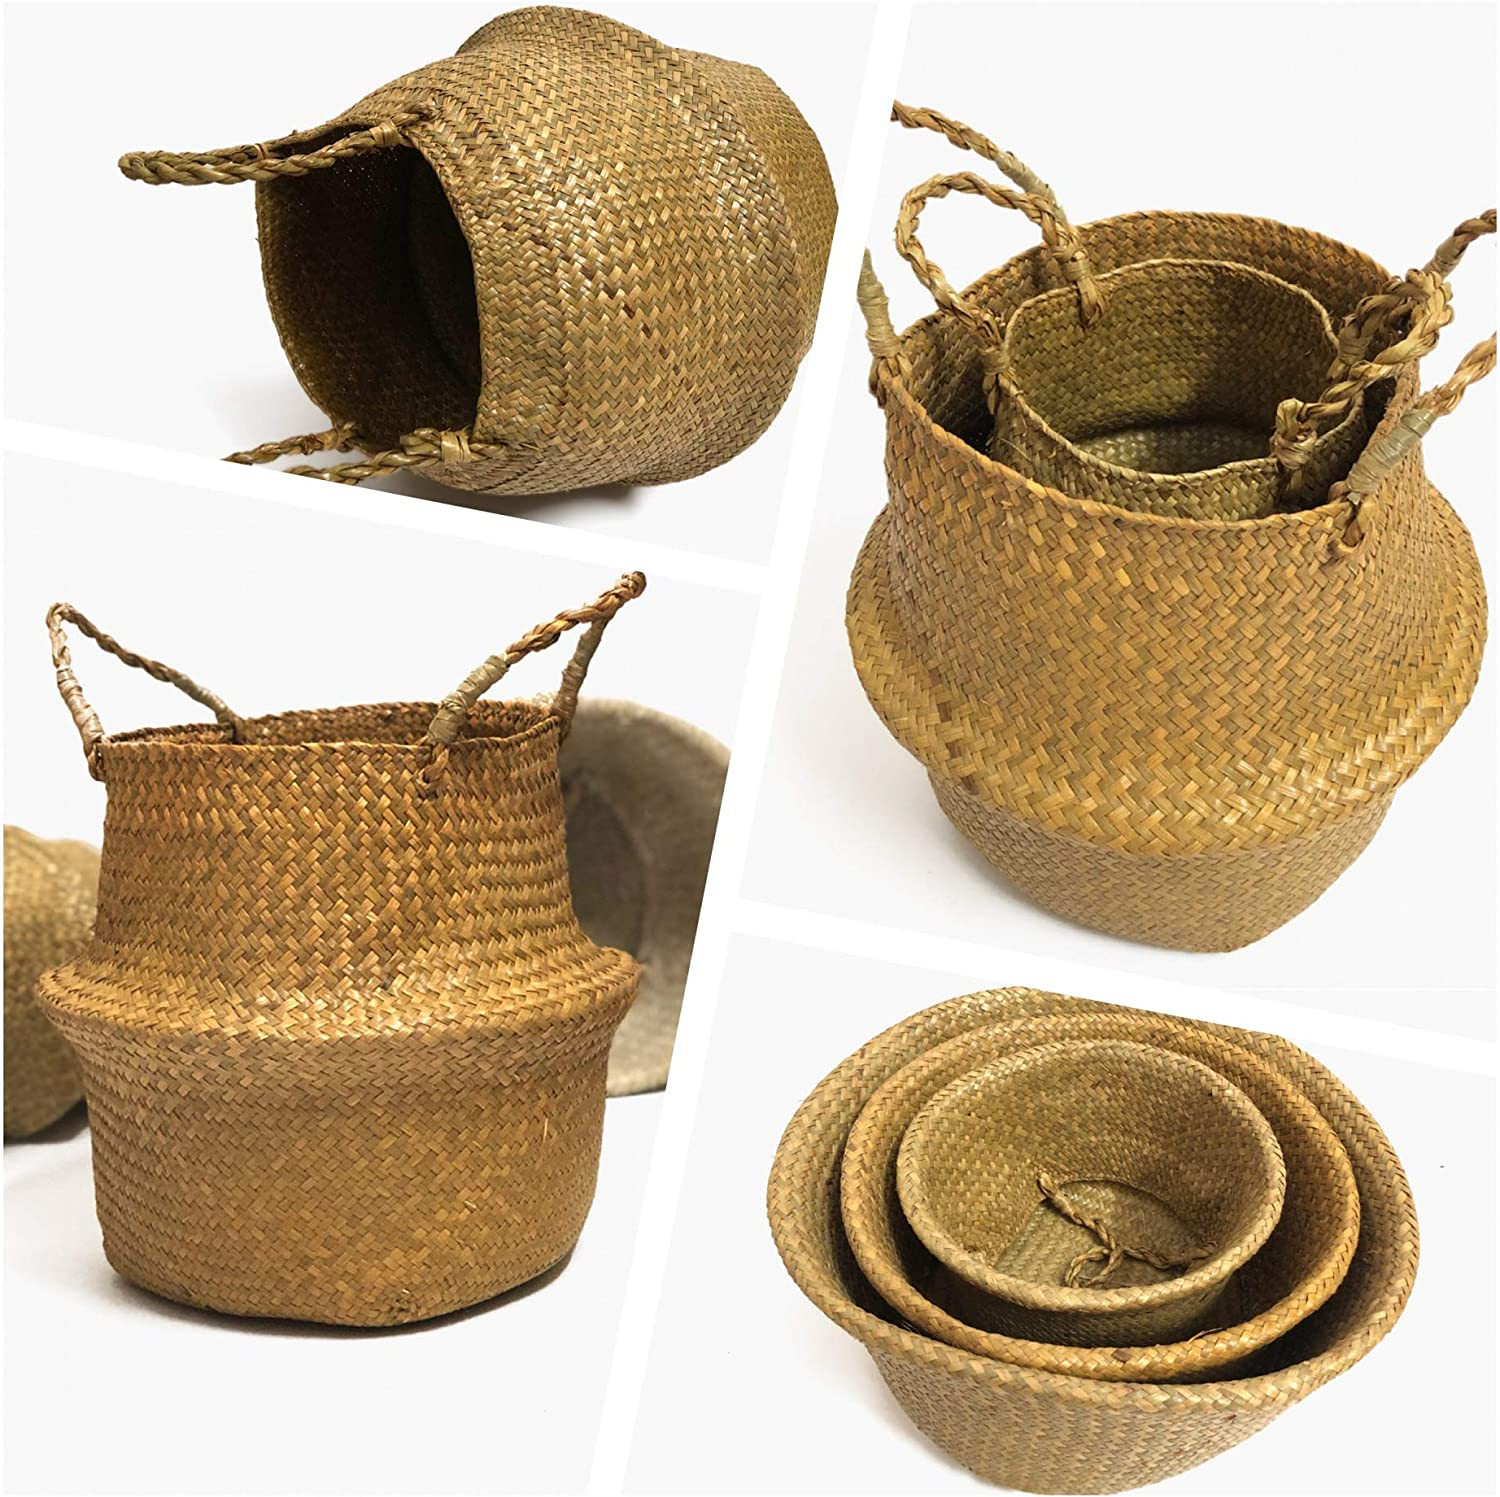 14.9 * 13.3 L Plant Tray Baskets and Picnic Baskets Laundry Baskets Hand-Woven Pot-Belly Basket with Natural Seagrass for Indoor Storage of Groceries and Toys